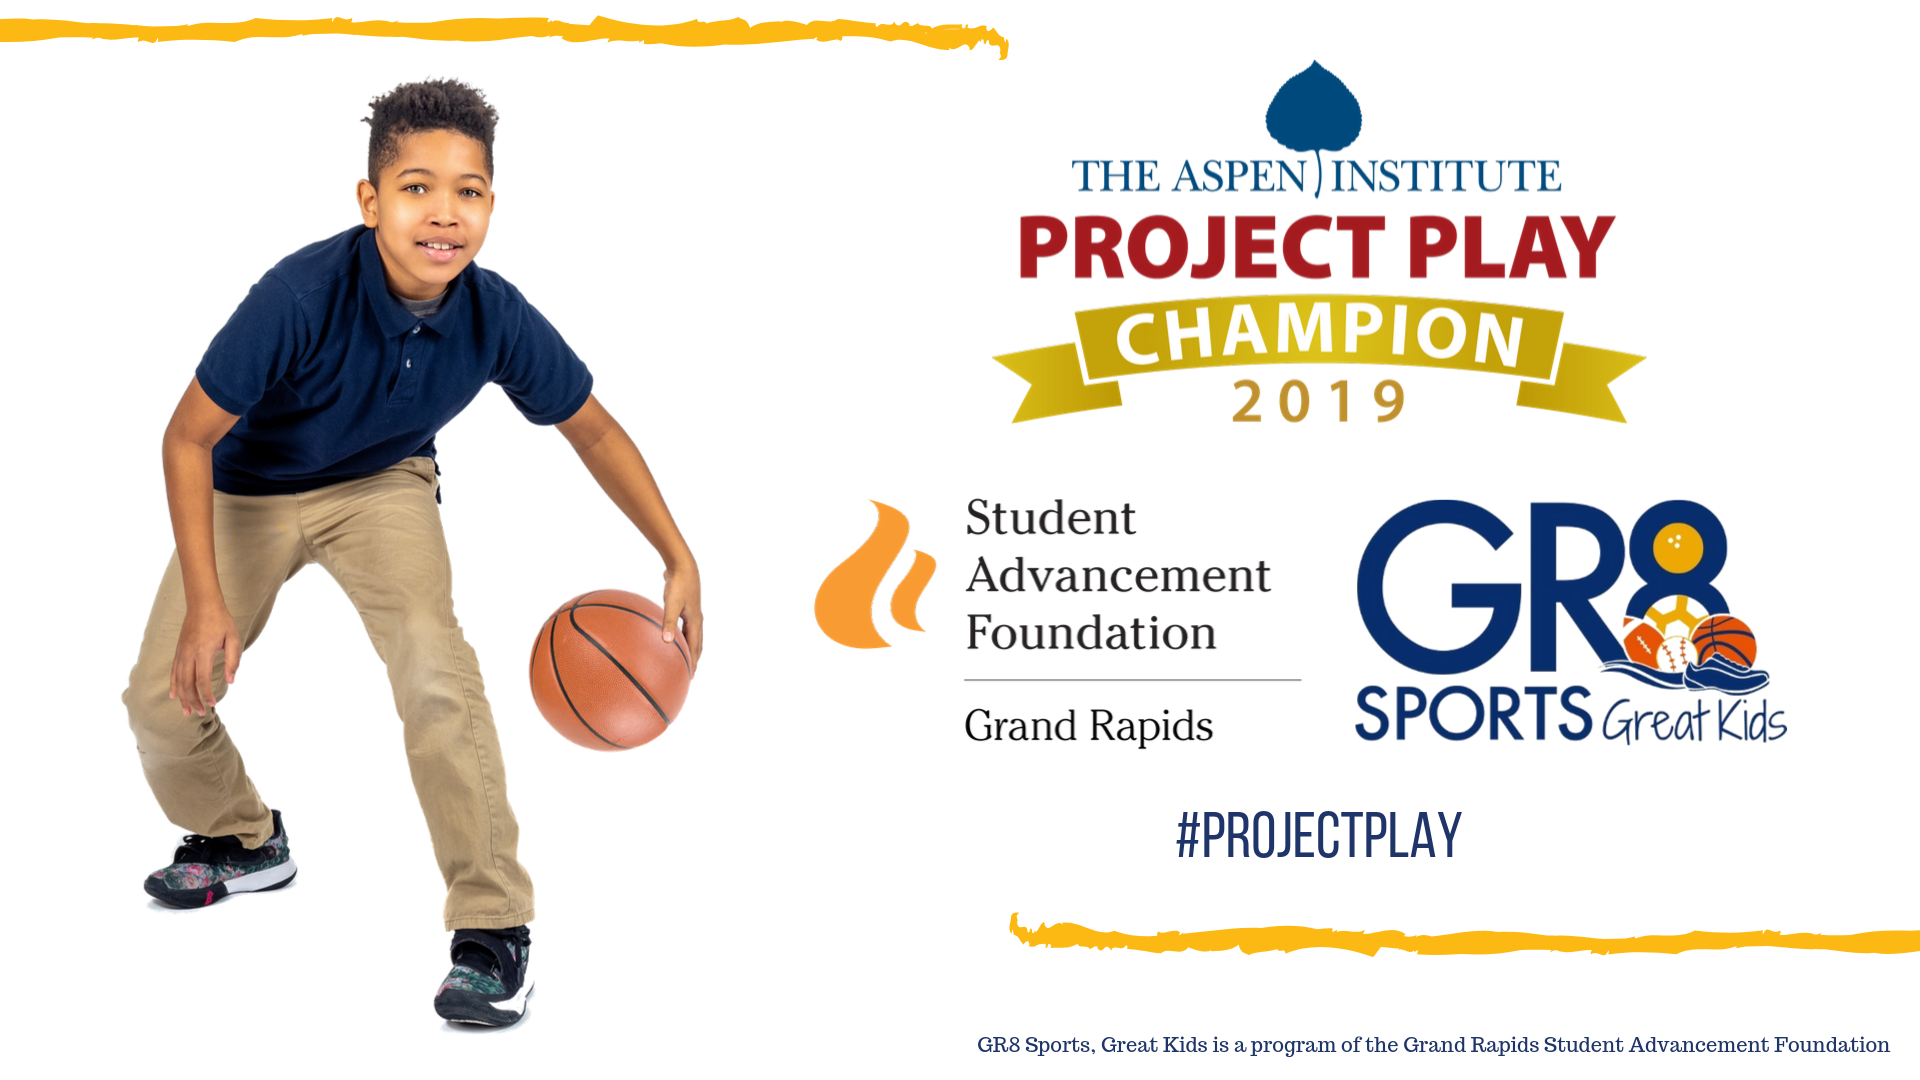 THE GRAND RAPIDS STUDENT ADVANCEMENT FOUNDATION'S PROGRAM GR8 SPORTS, GREAT KIDS NAMED AS ONE OF THE ASPEN INSTITUTE'S 2019 PROJECT PLAY CHAMPIONS